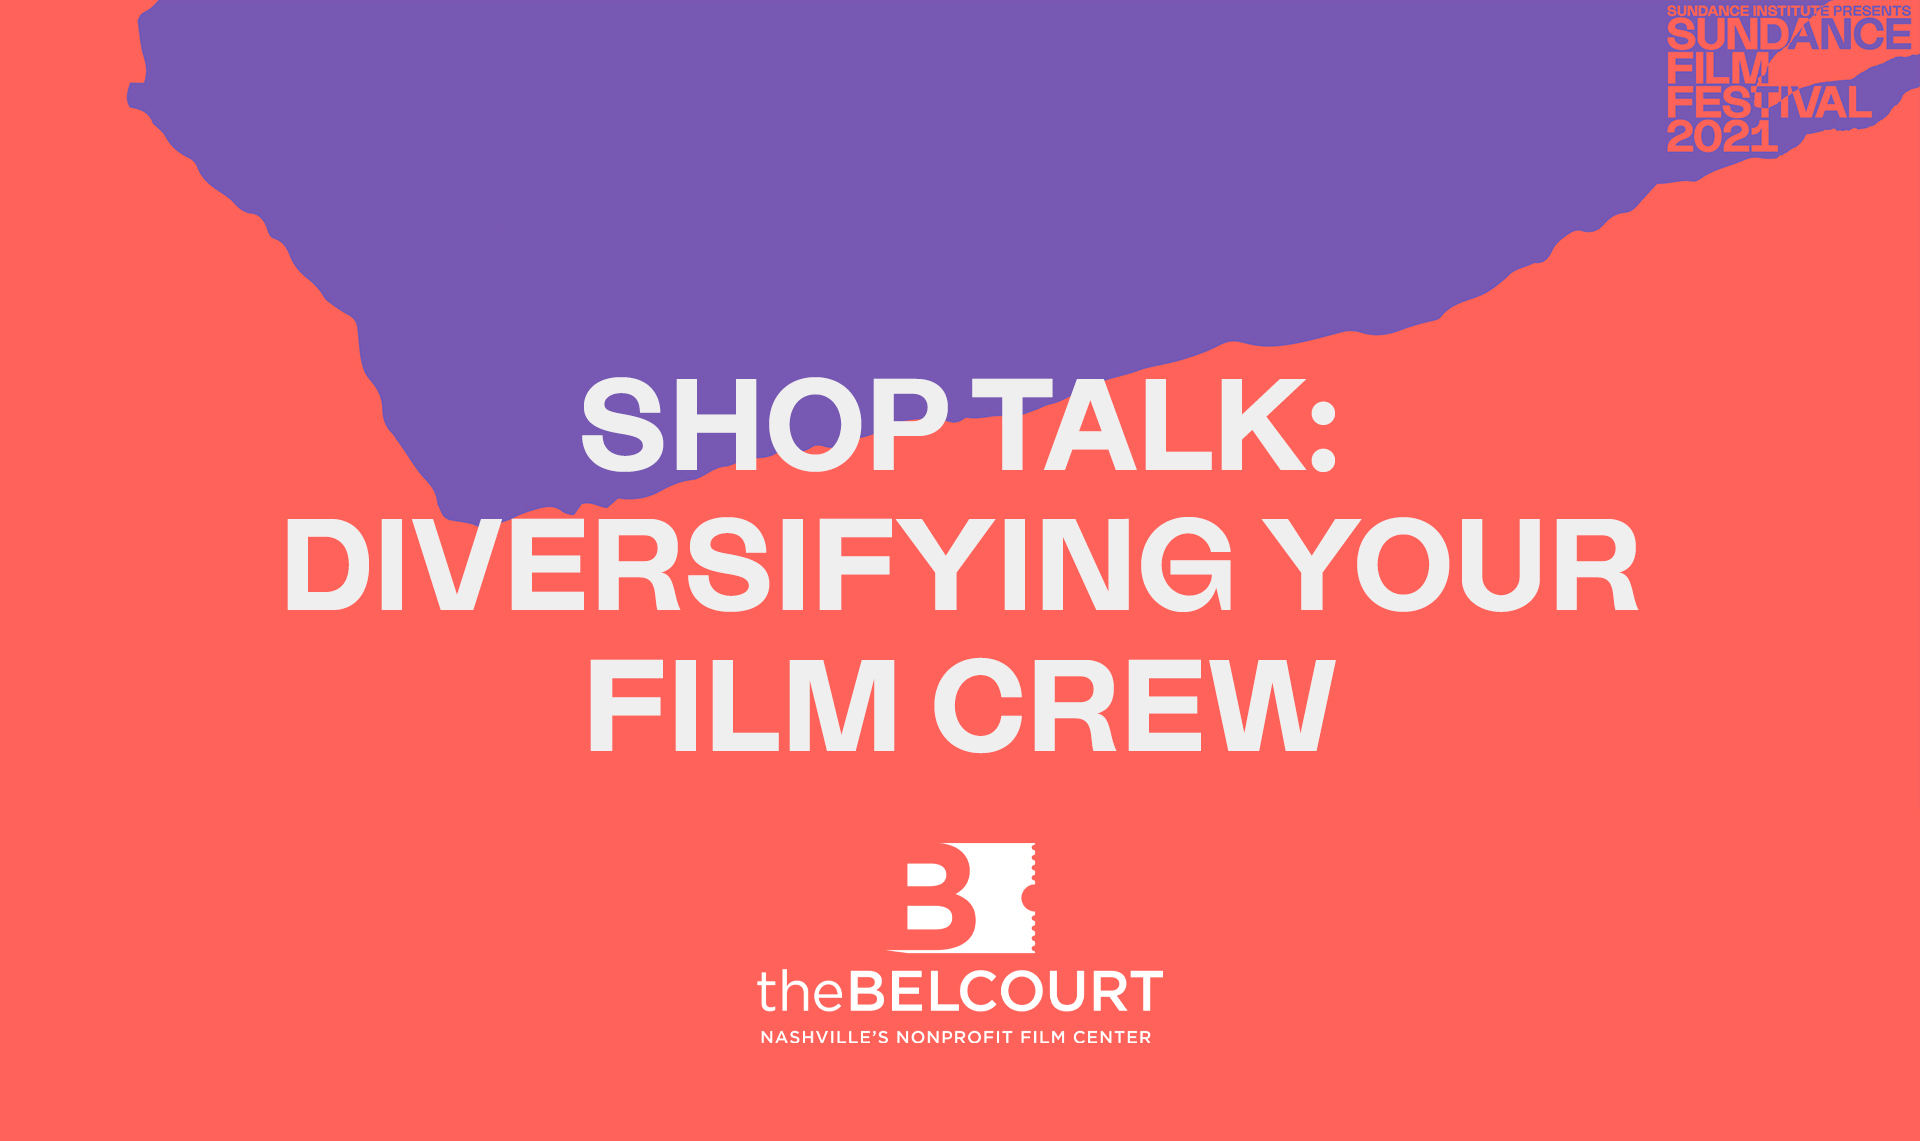 Sundance Beyond Film: Shop Talk: Diversifying Your Film Crew